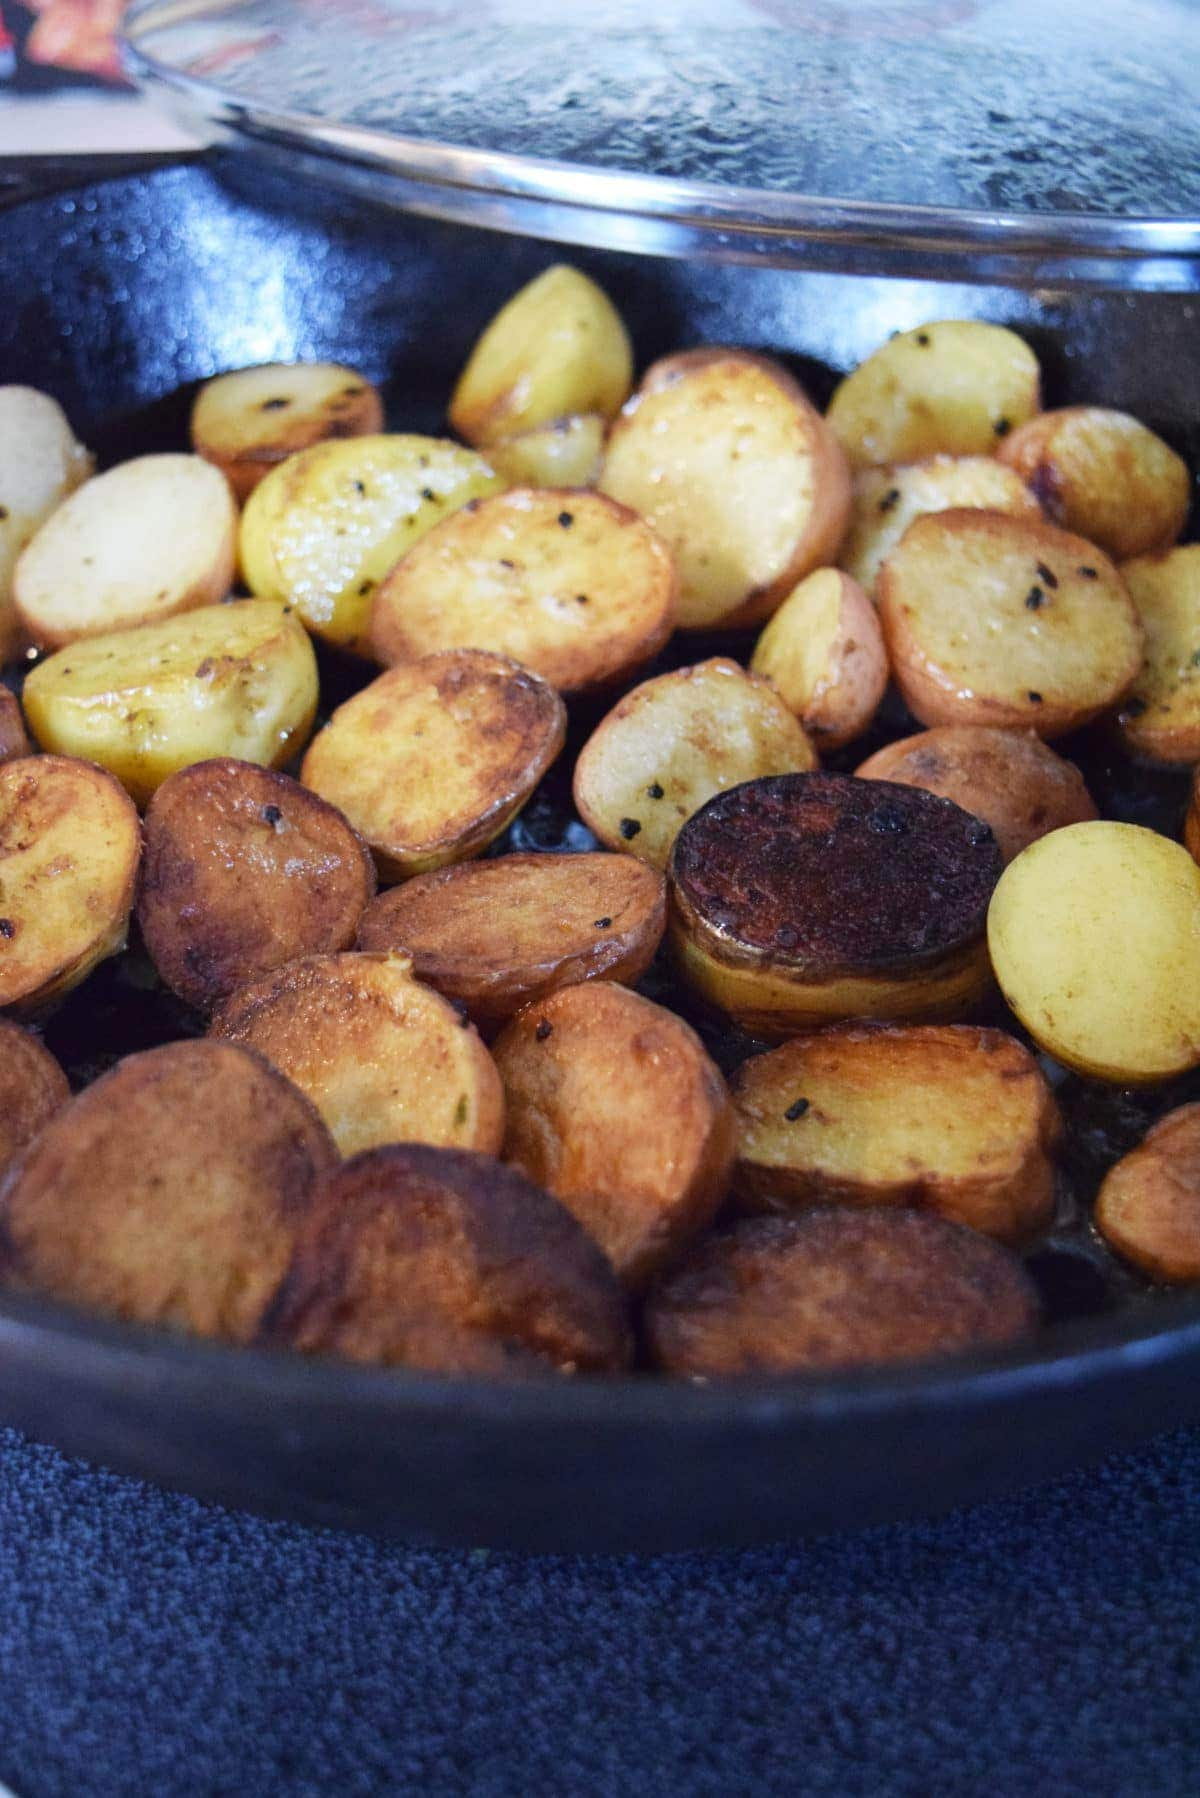 Cook Potatoes with Lid On